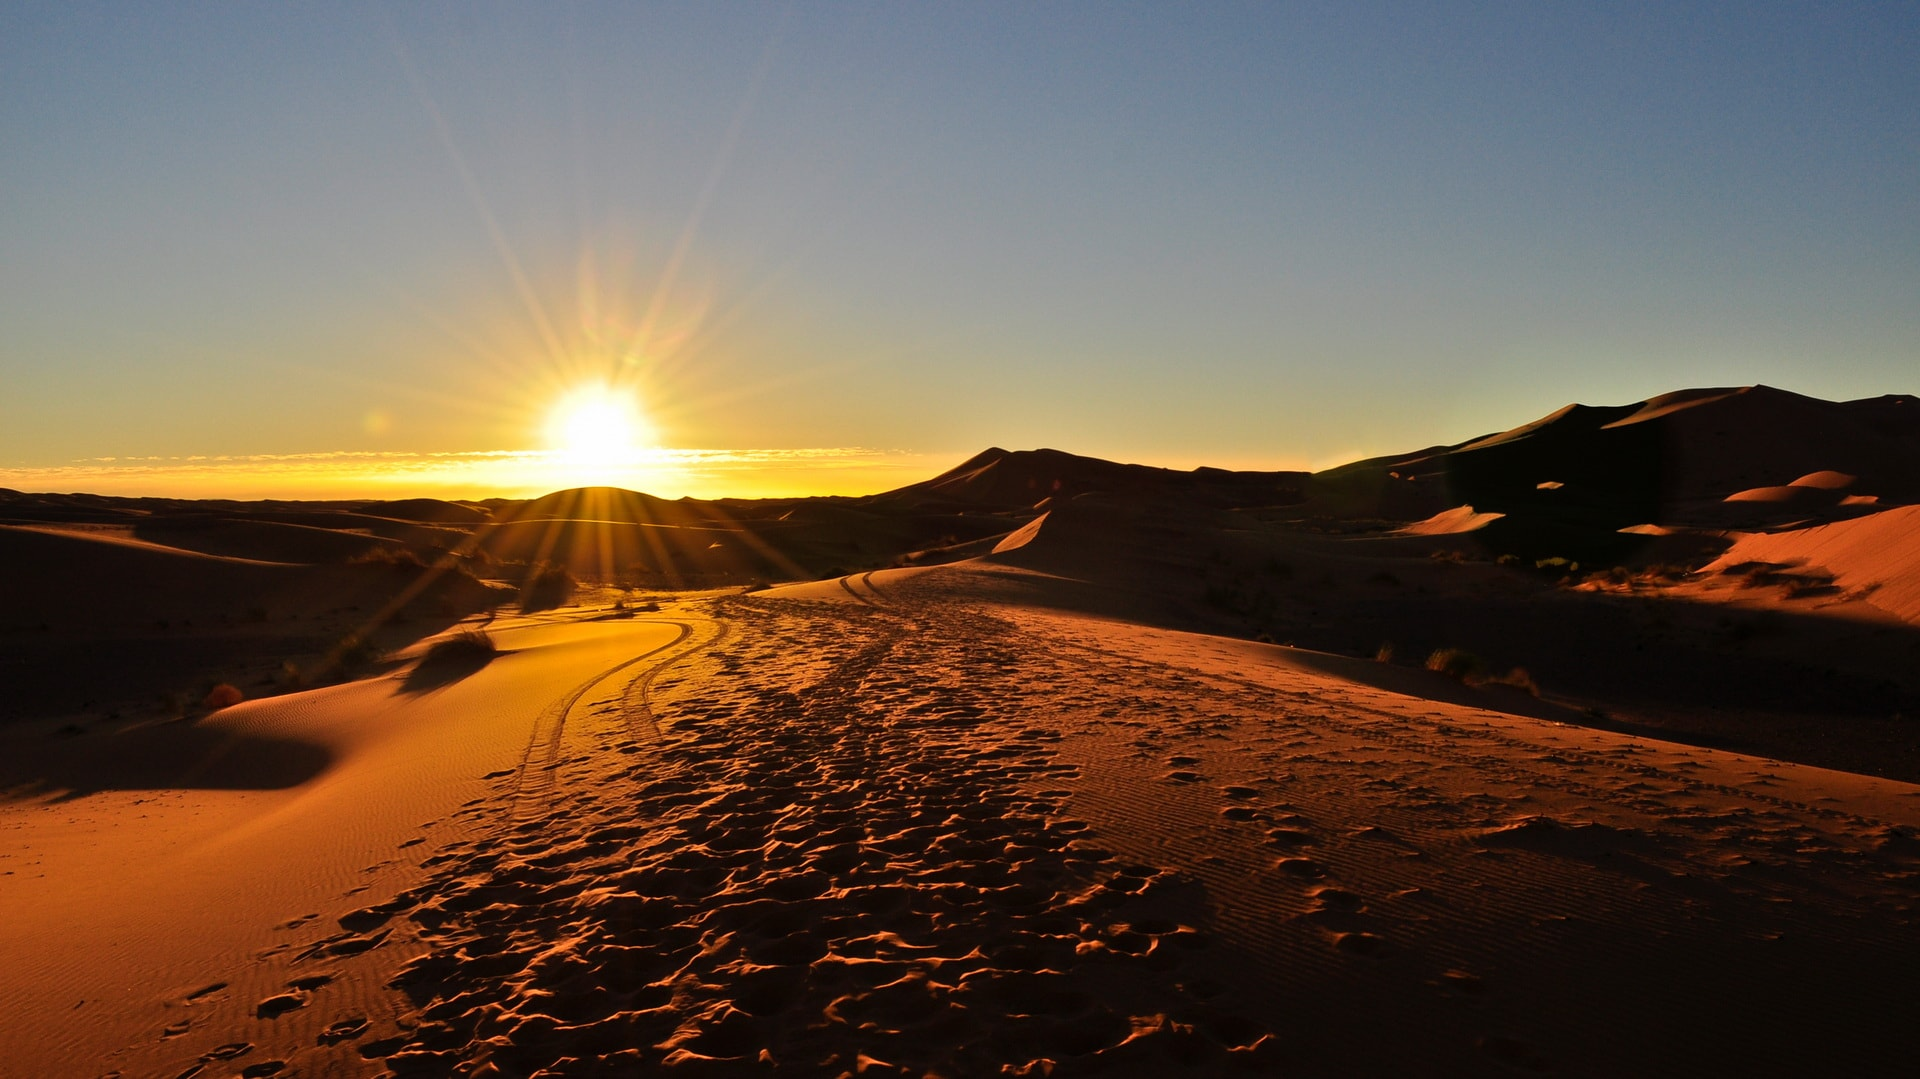 pathfinders treks - desert tour from fez to marrakech